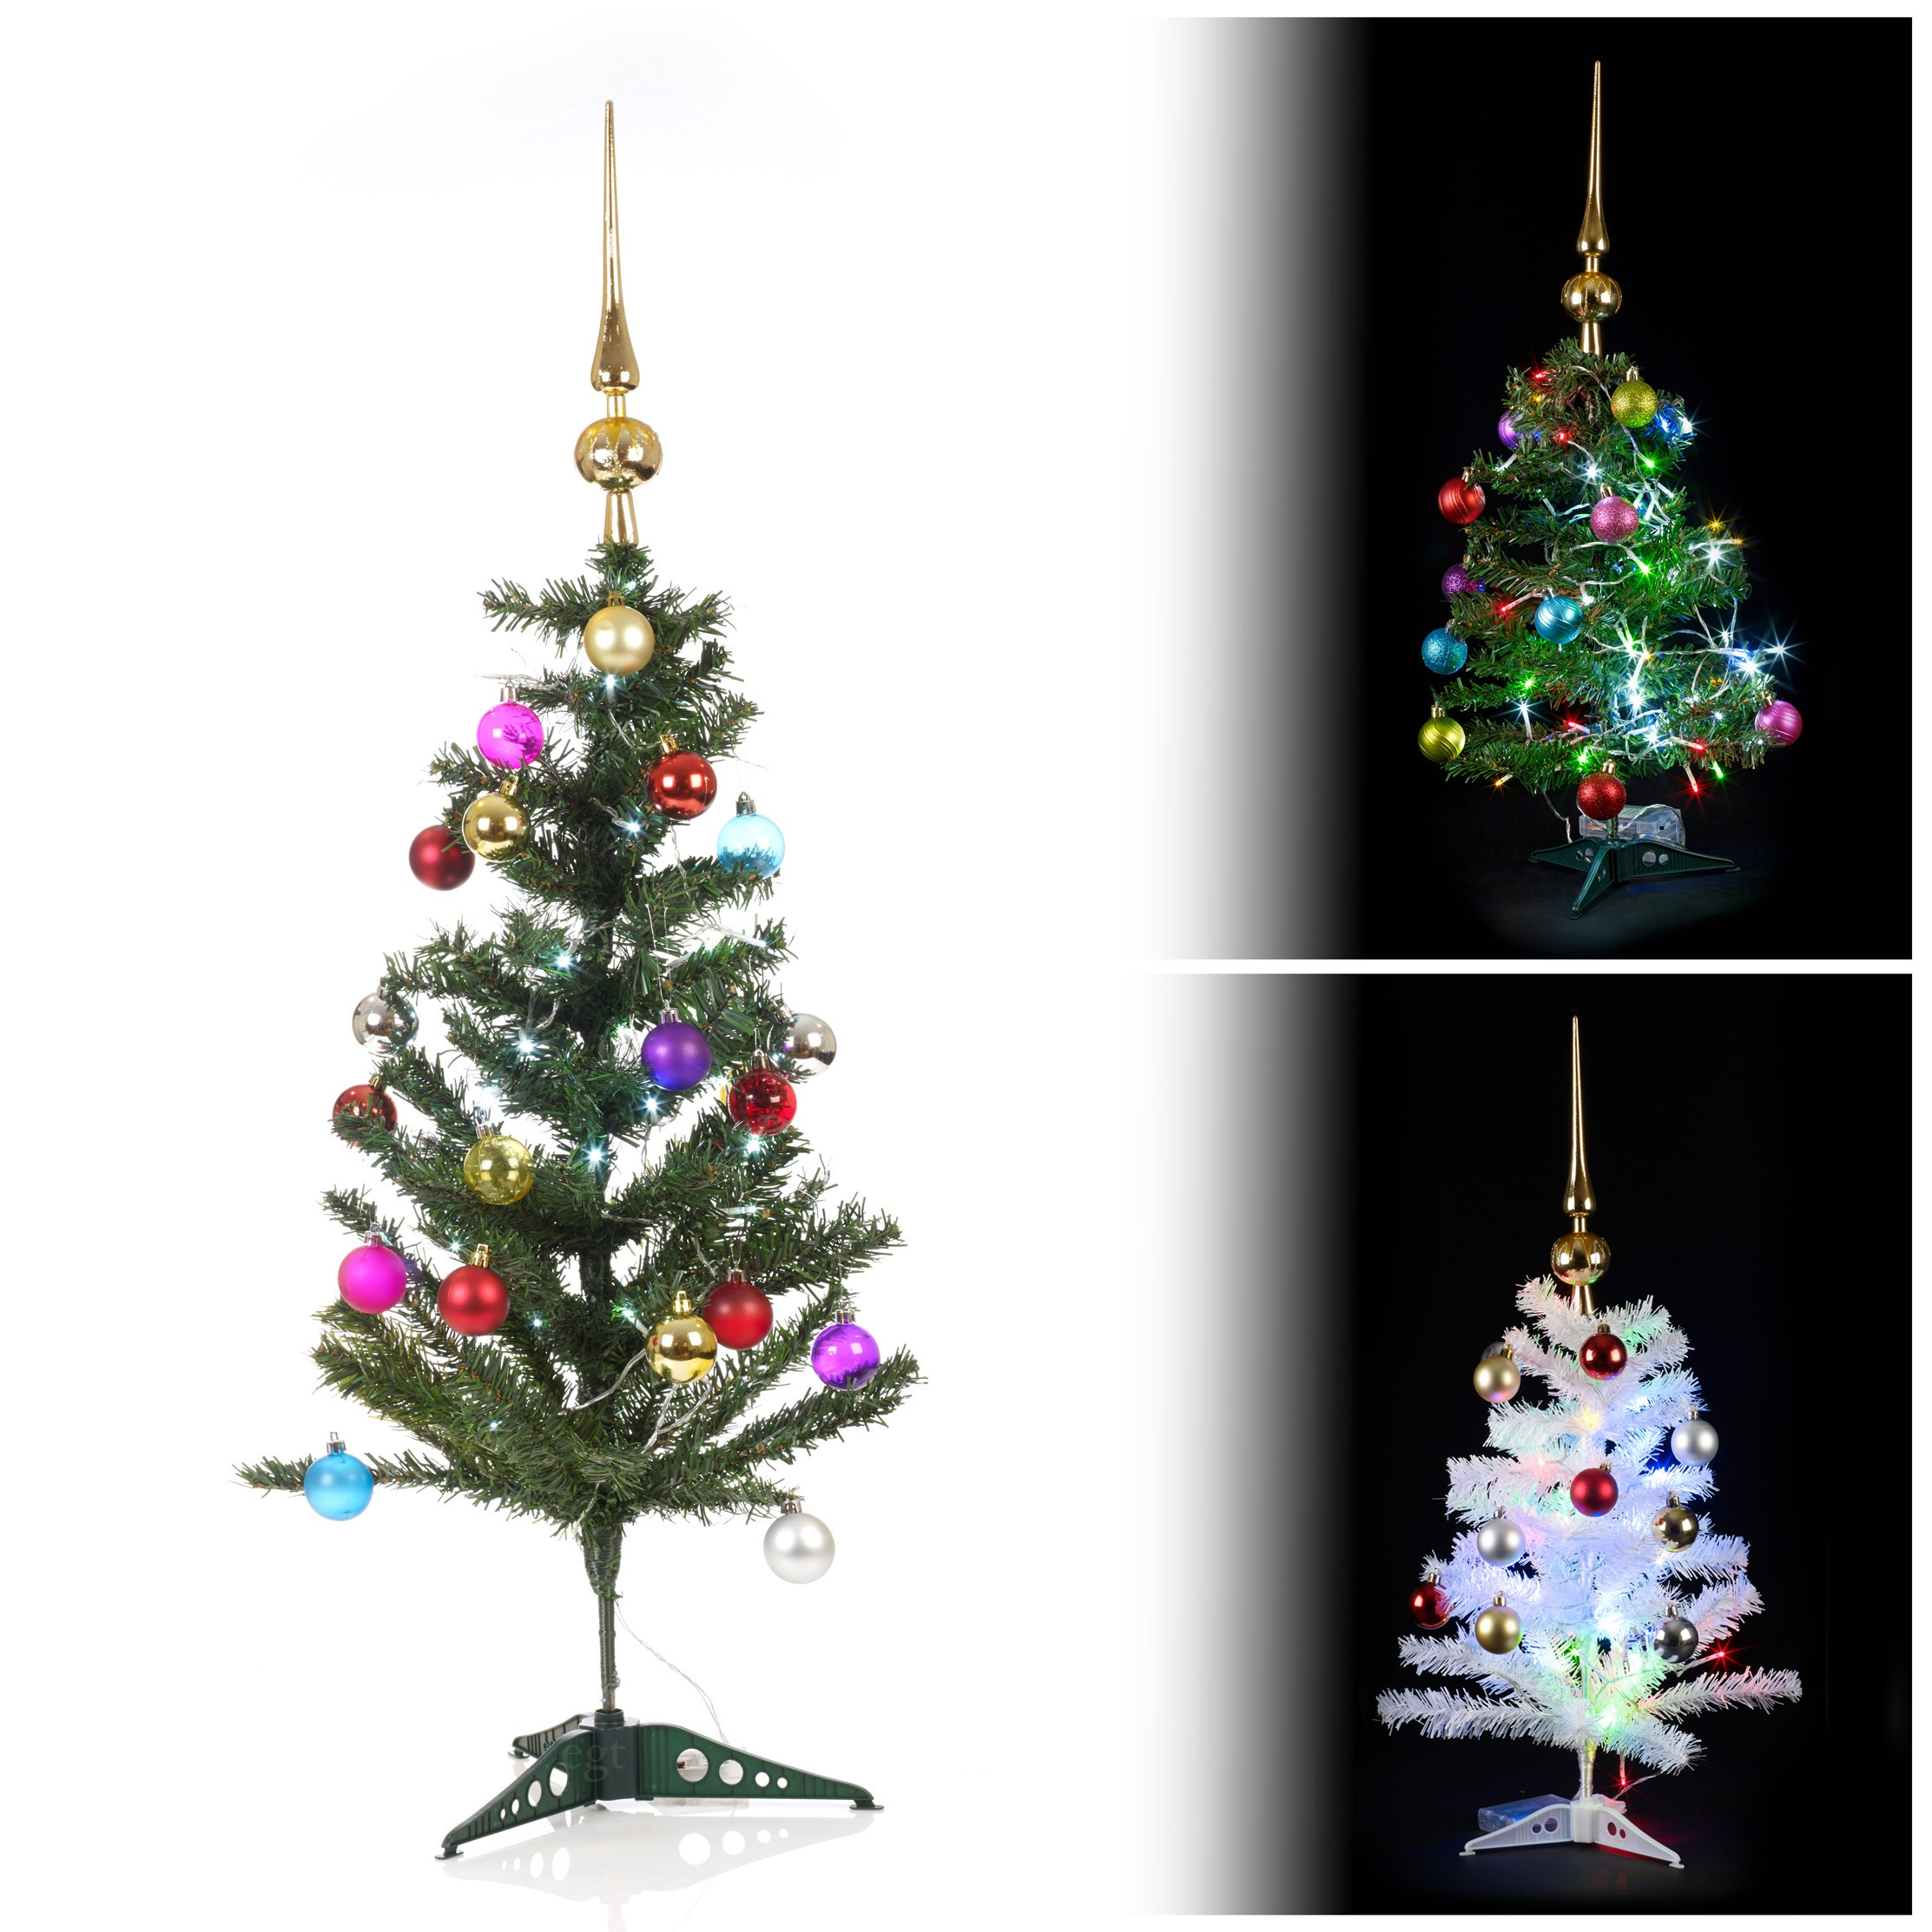 Christmas Decorations And Trees Uk : Artificial indoor christmas tree with led lights baubles